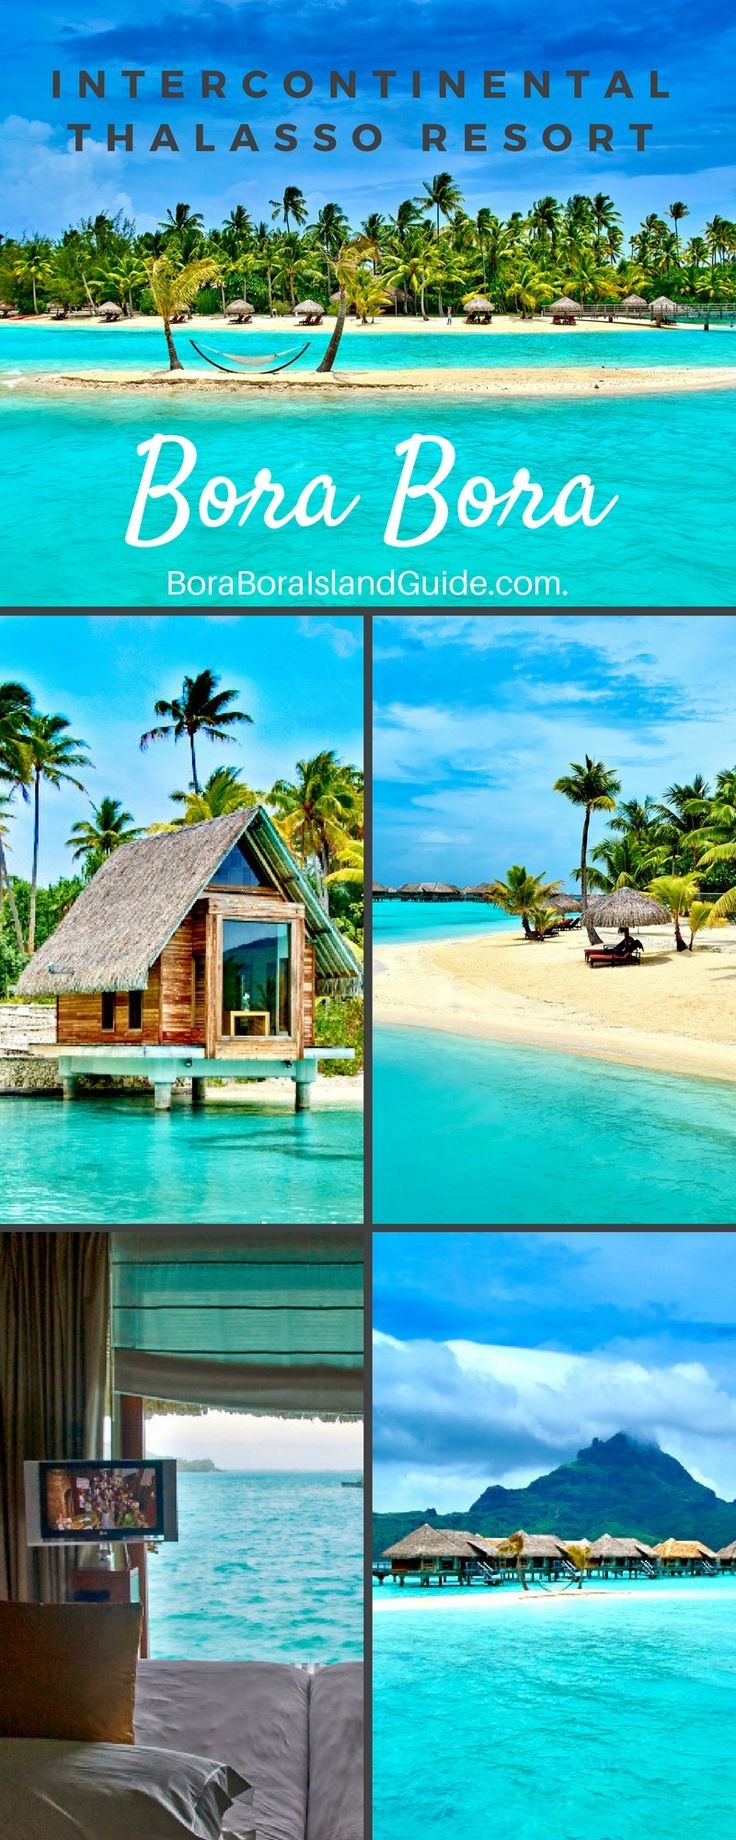 Everything you need to know about the Thalasso Resort Bora Bora.